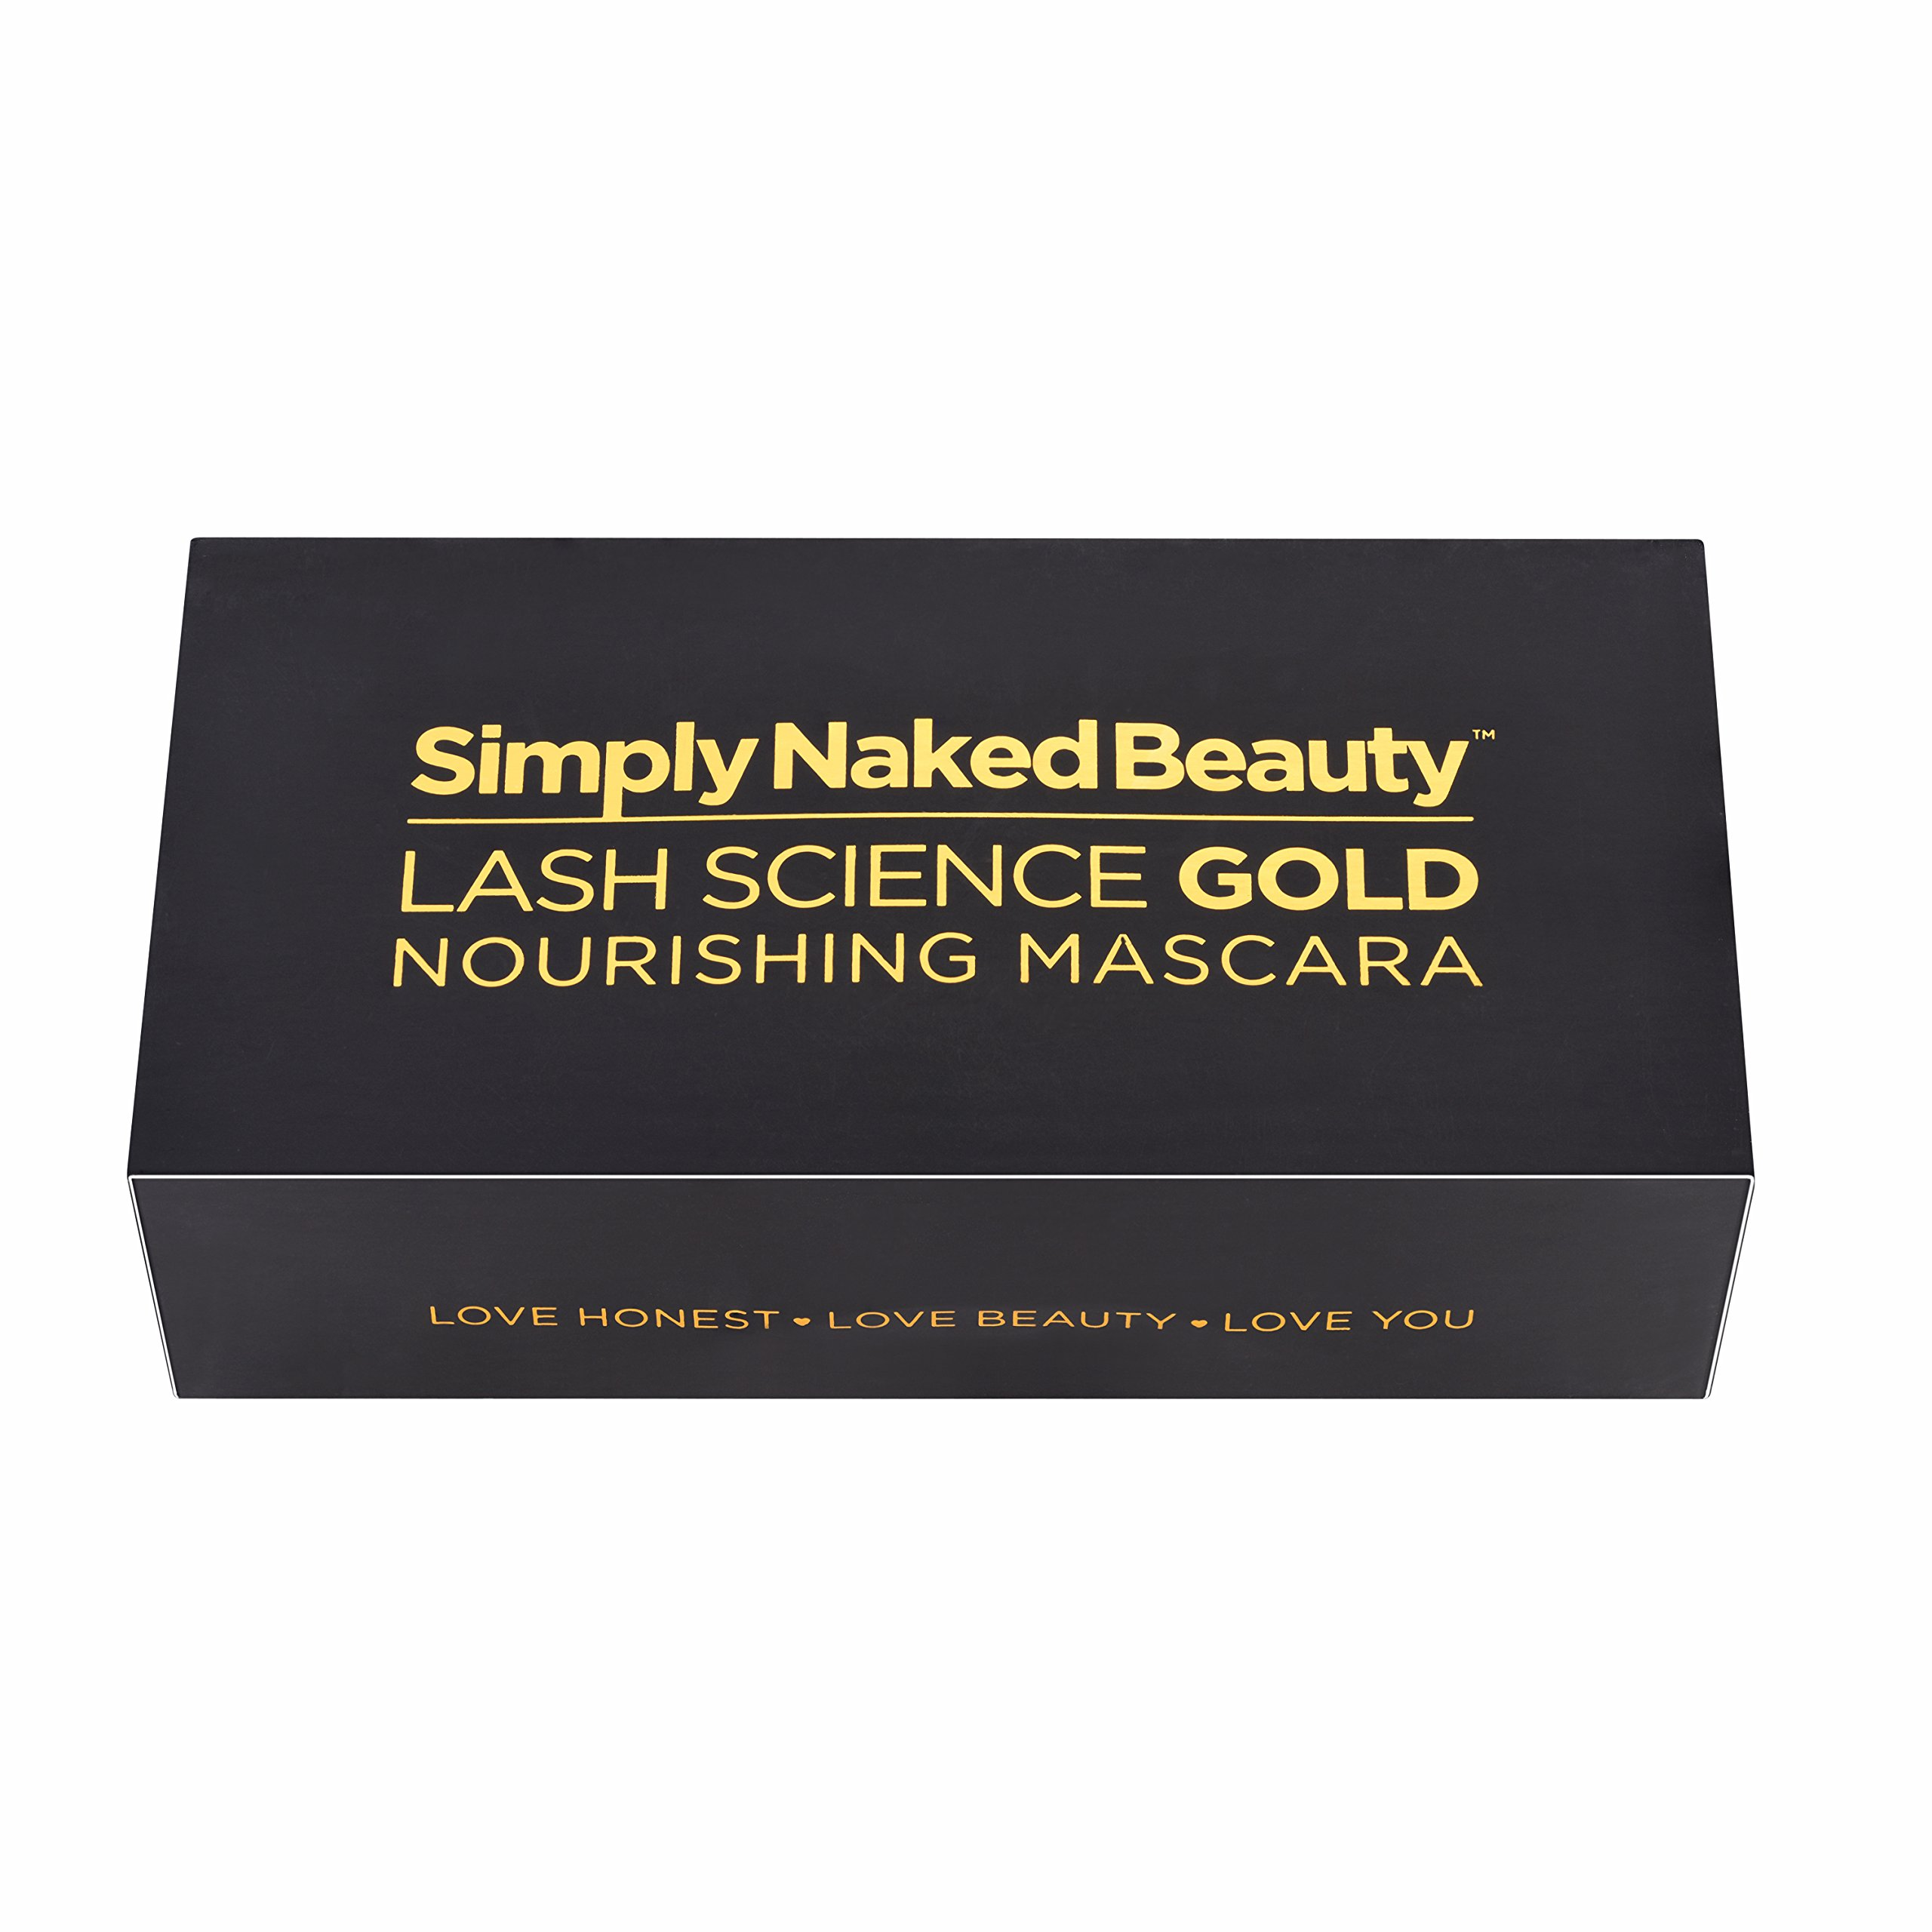 3D Fiber Lash Mascara with Eyelash Enhancing Serum by Simply Naked Beauty. Infused with Organic Castor Oil to nourish lashes. Organic & hypoallergenic ingredients. Waterproof, smudge proof & last all by Simply Naked Beauty (Image #5)